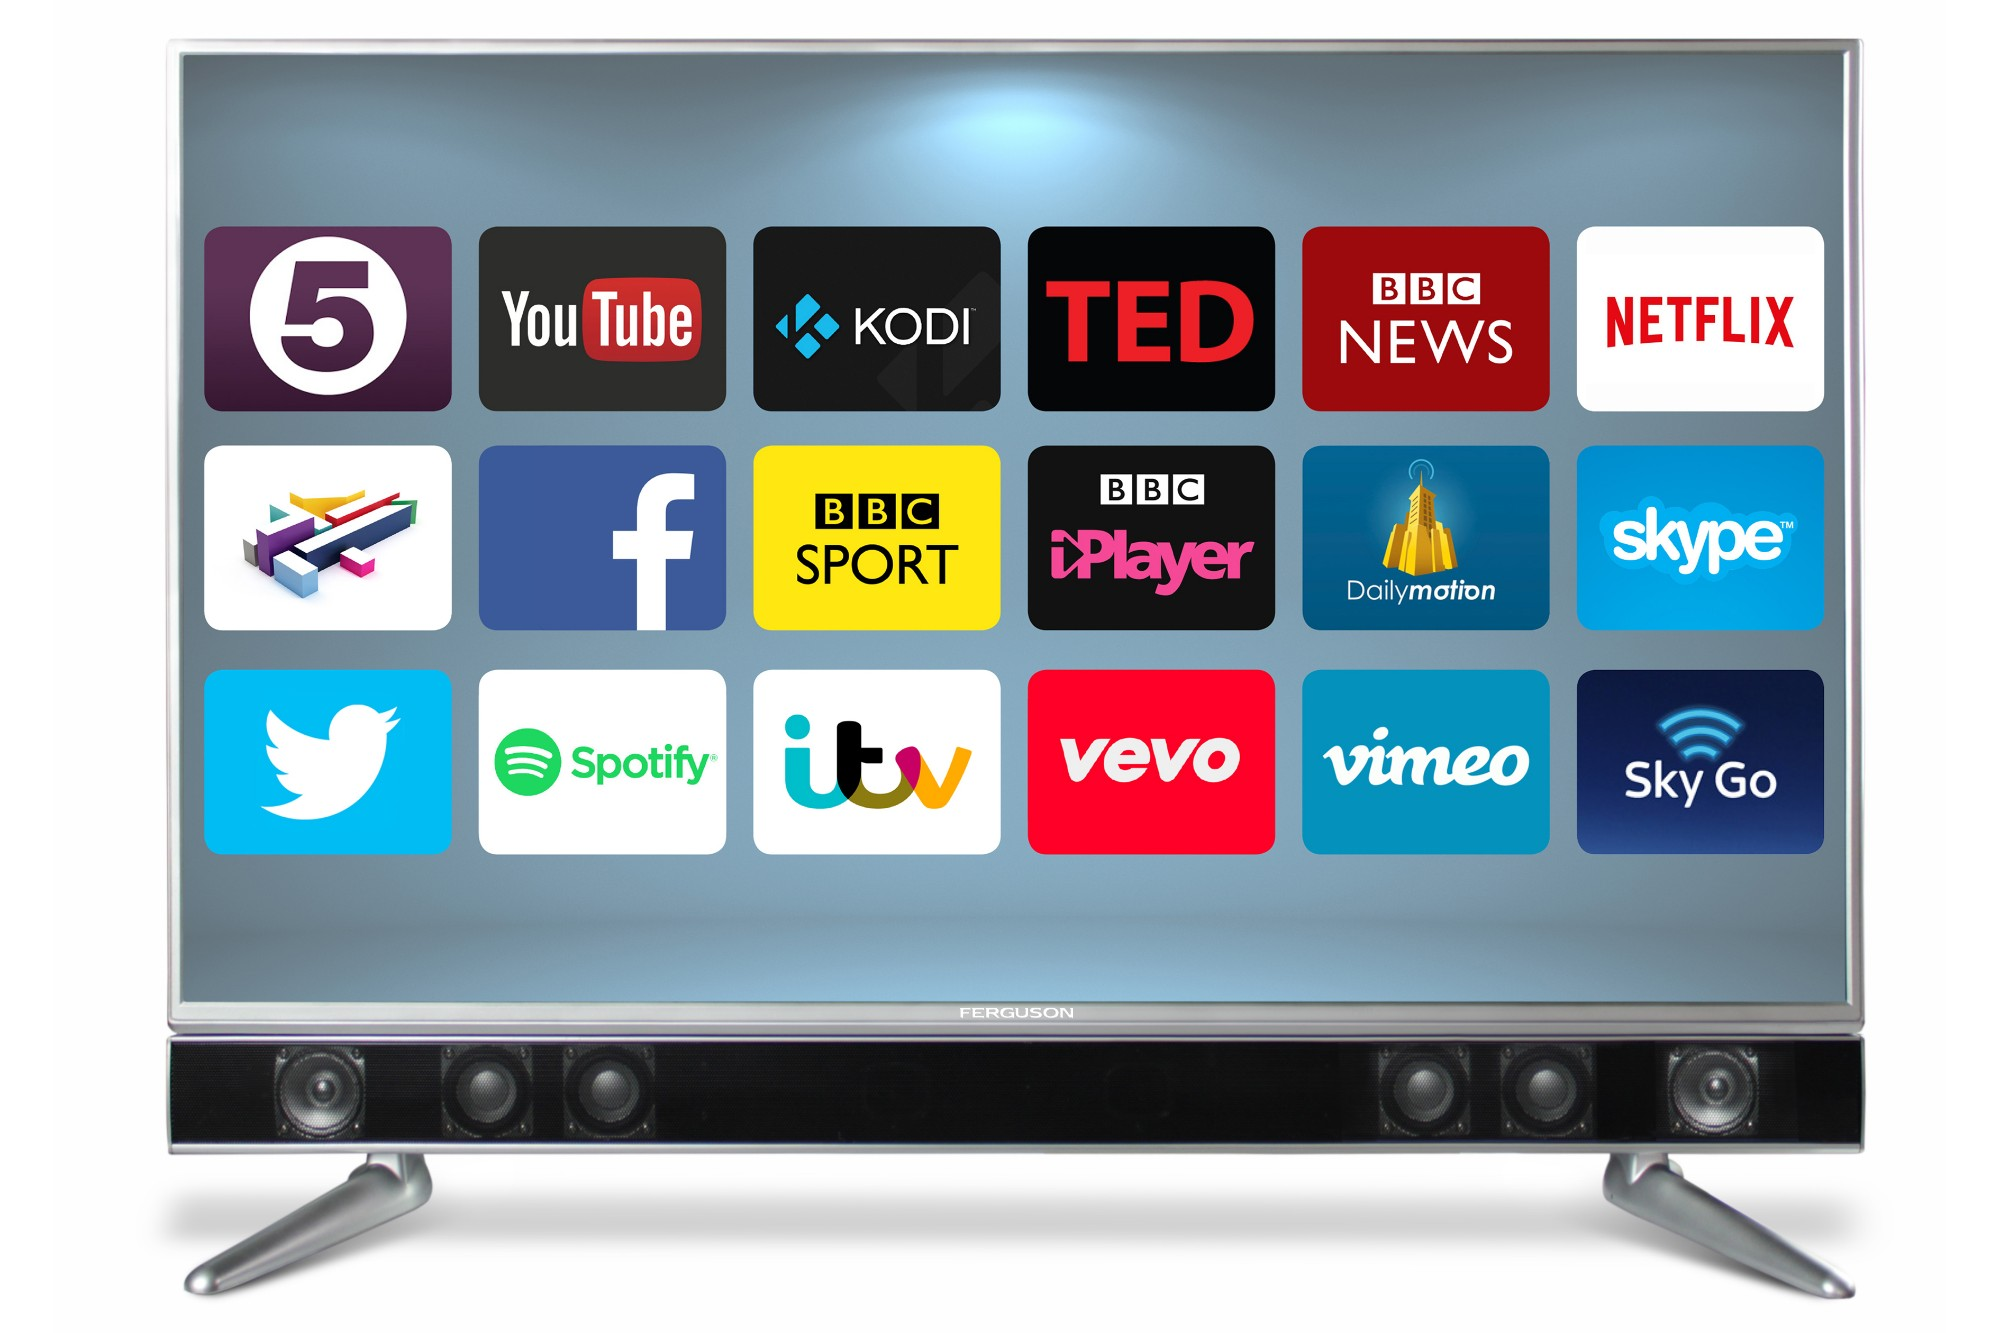 Ferguson FP43ANSMT 43 inch Android Smart TV with Intergrated Sound Bar - Black